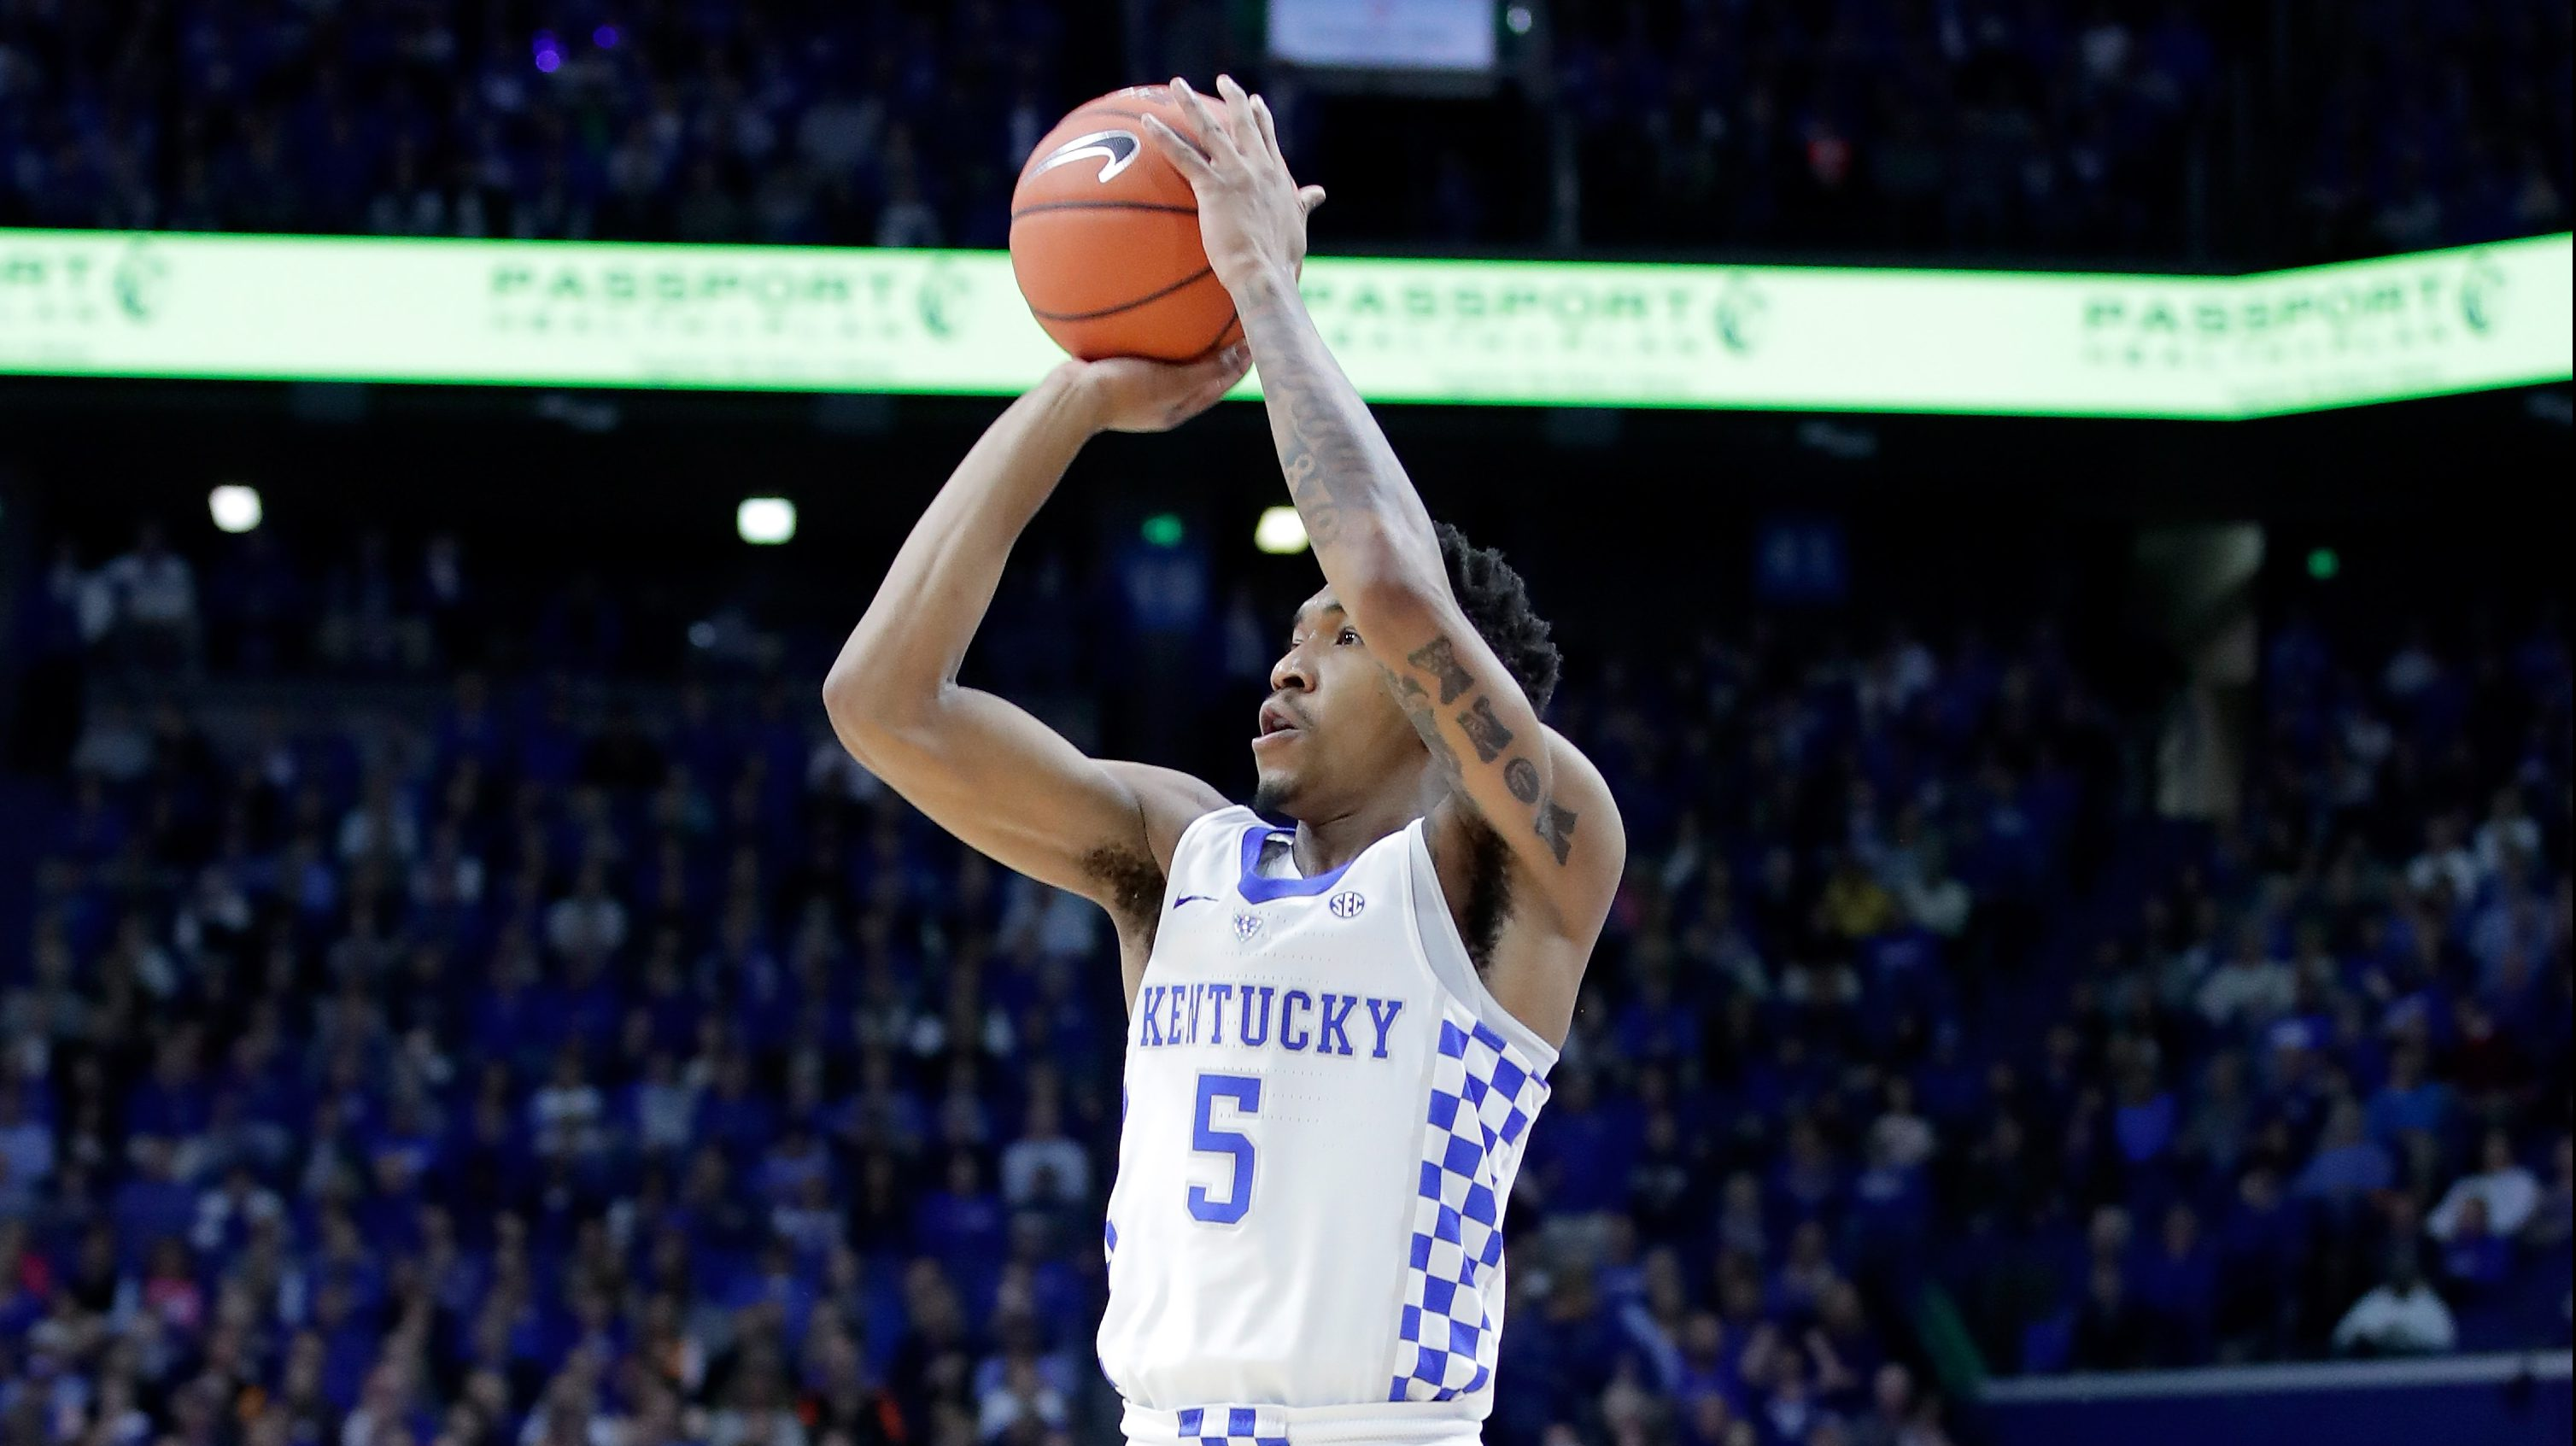 LEXINGTON, KY - FEBRUARY 14: Malik Monk #5 of the Kentucky Wildcats shoots the ball against the Tennessee Volunteers at Rupp Arena on February 14, 2017 in Lexington, Kentucky. (Photo by Andy Lyons/Getty Images)